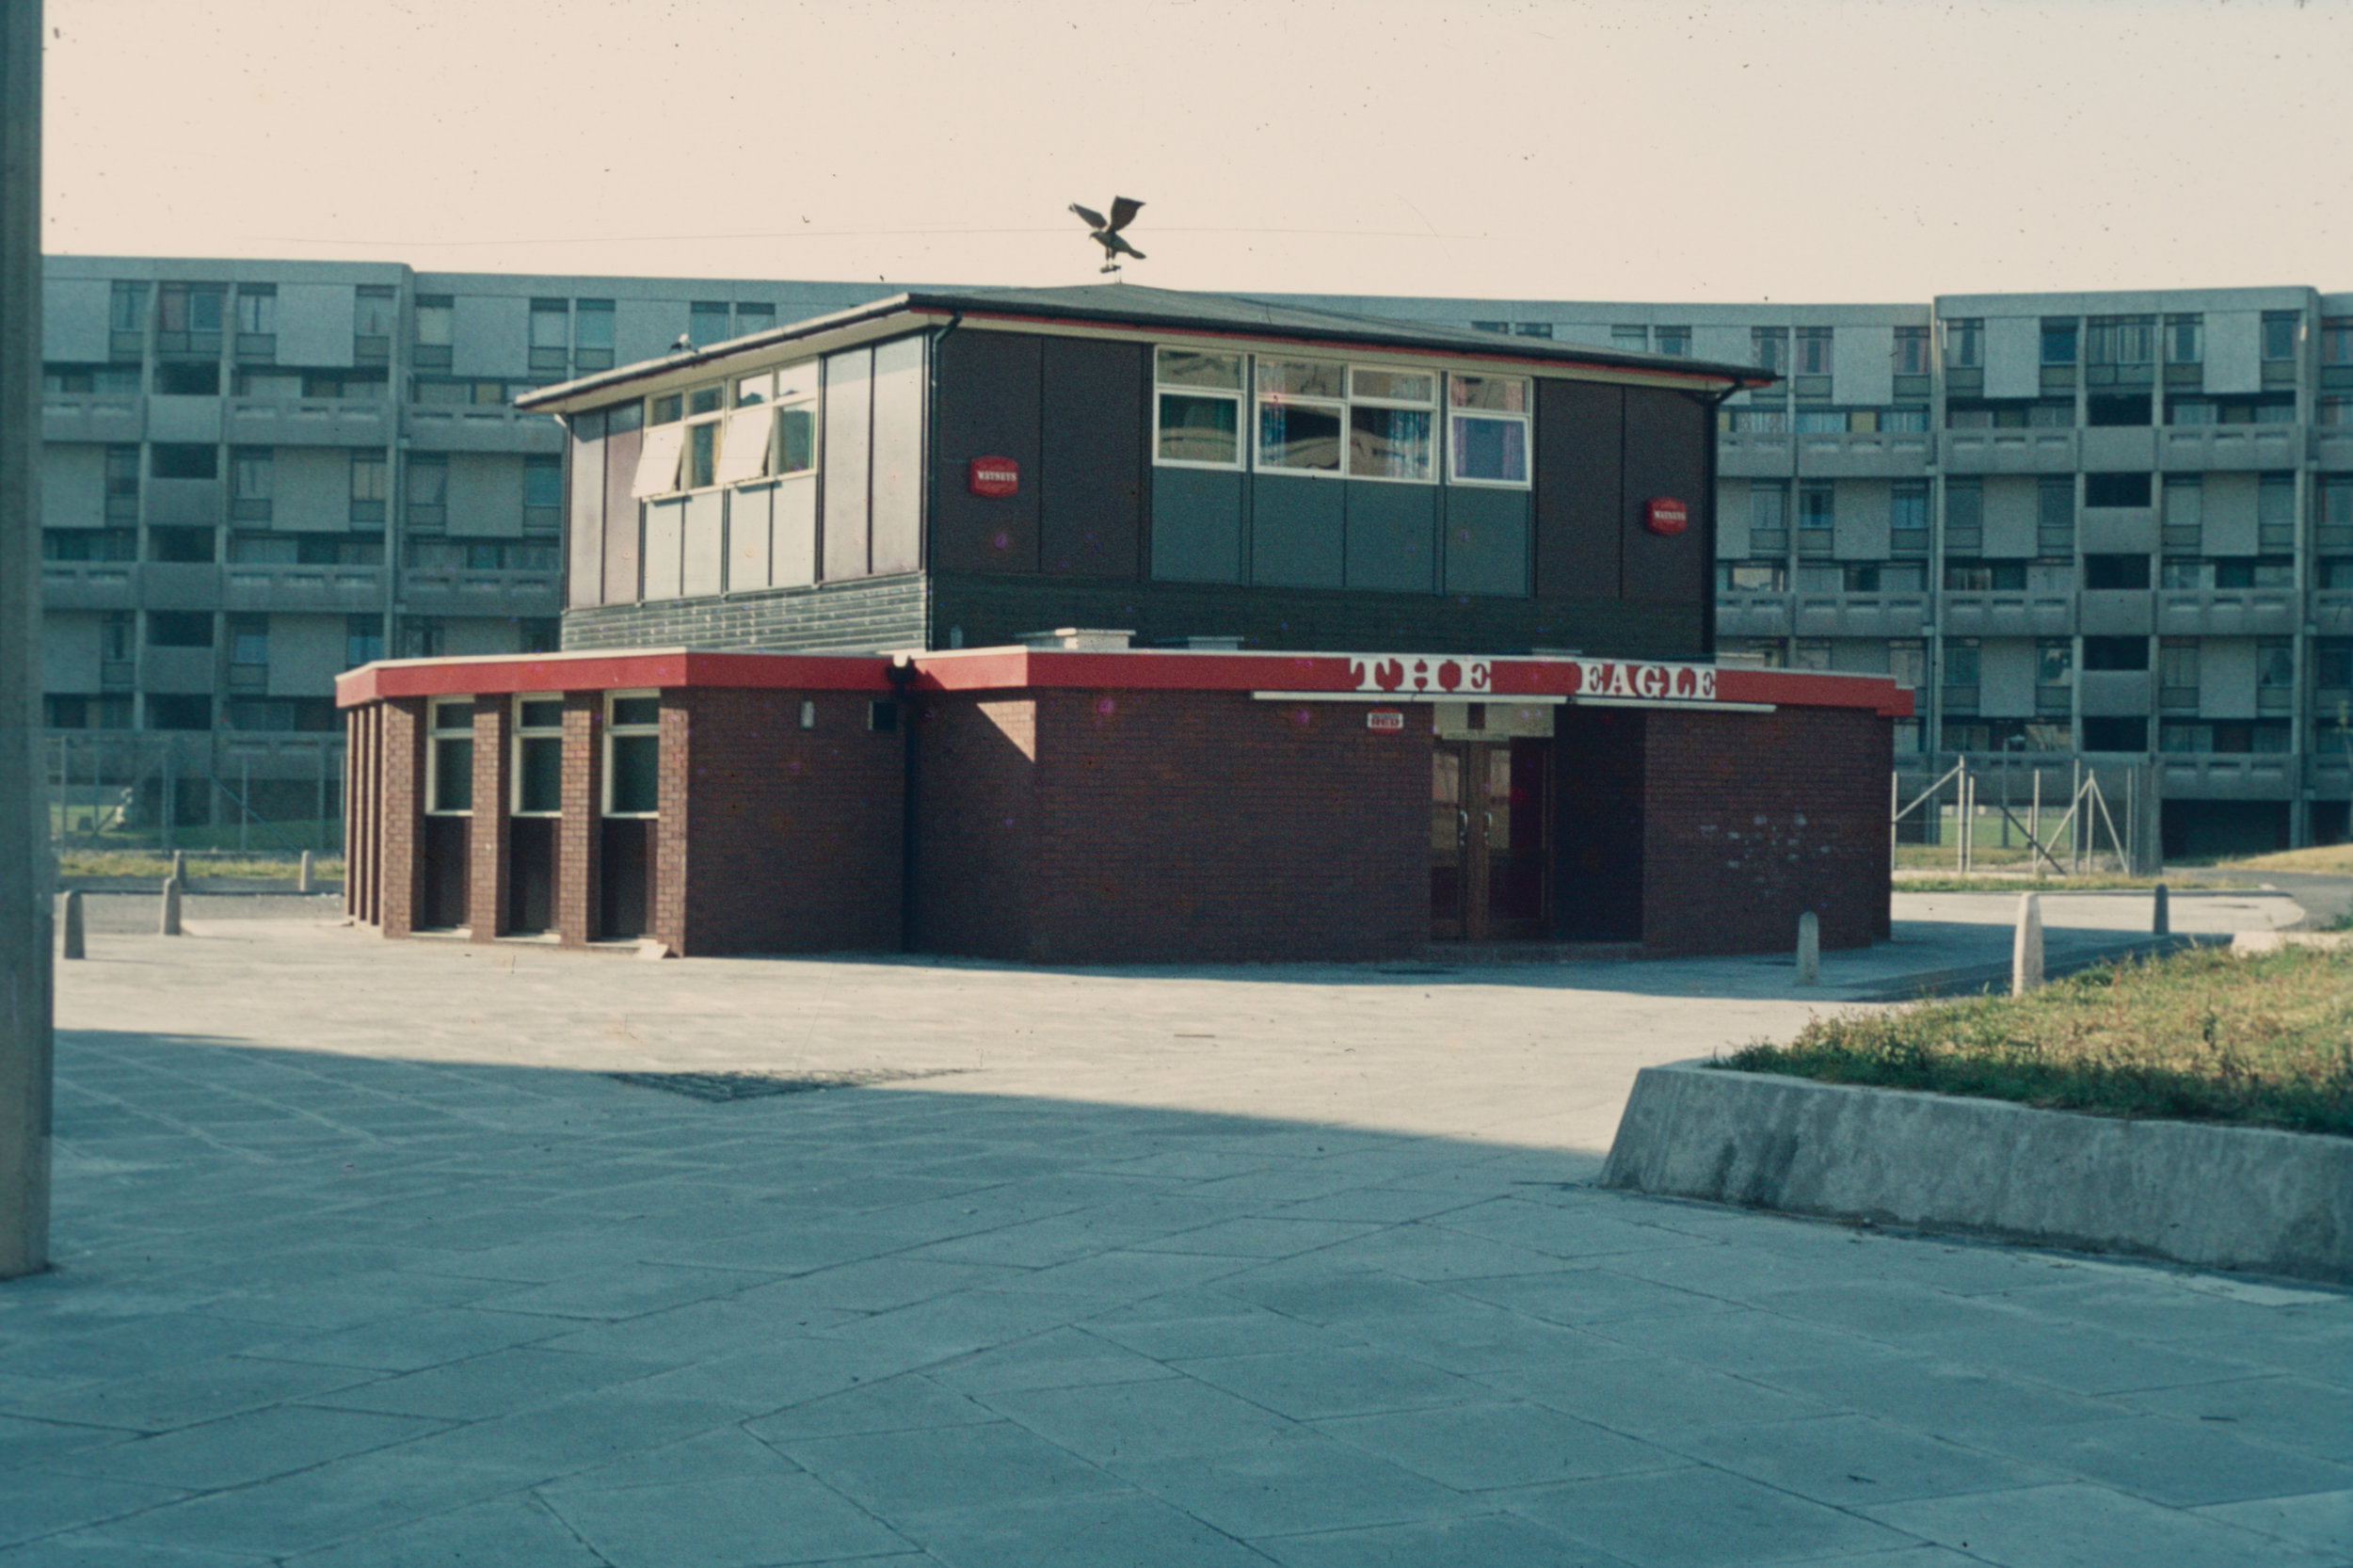 hulme-from-the-archives-01.jpg